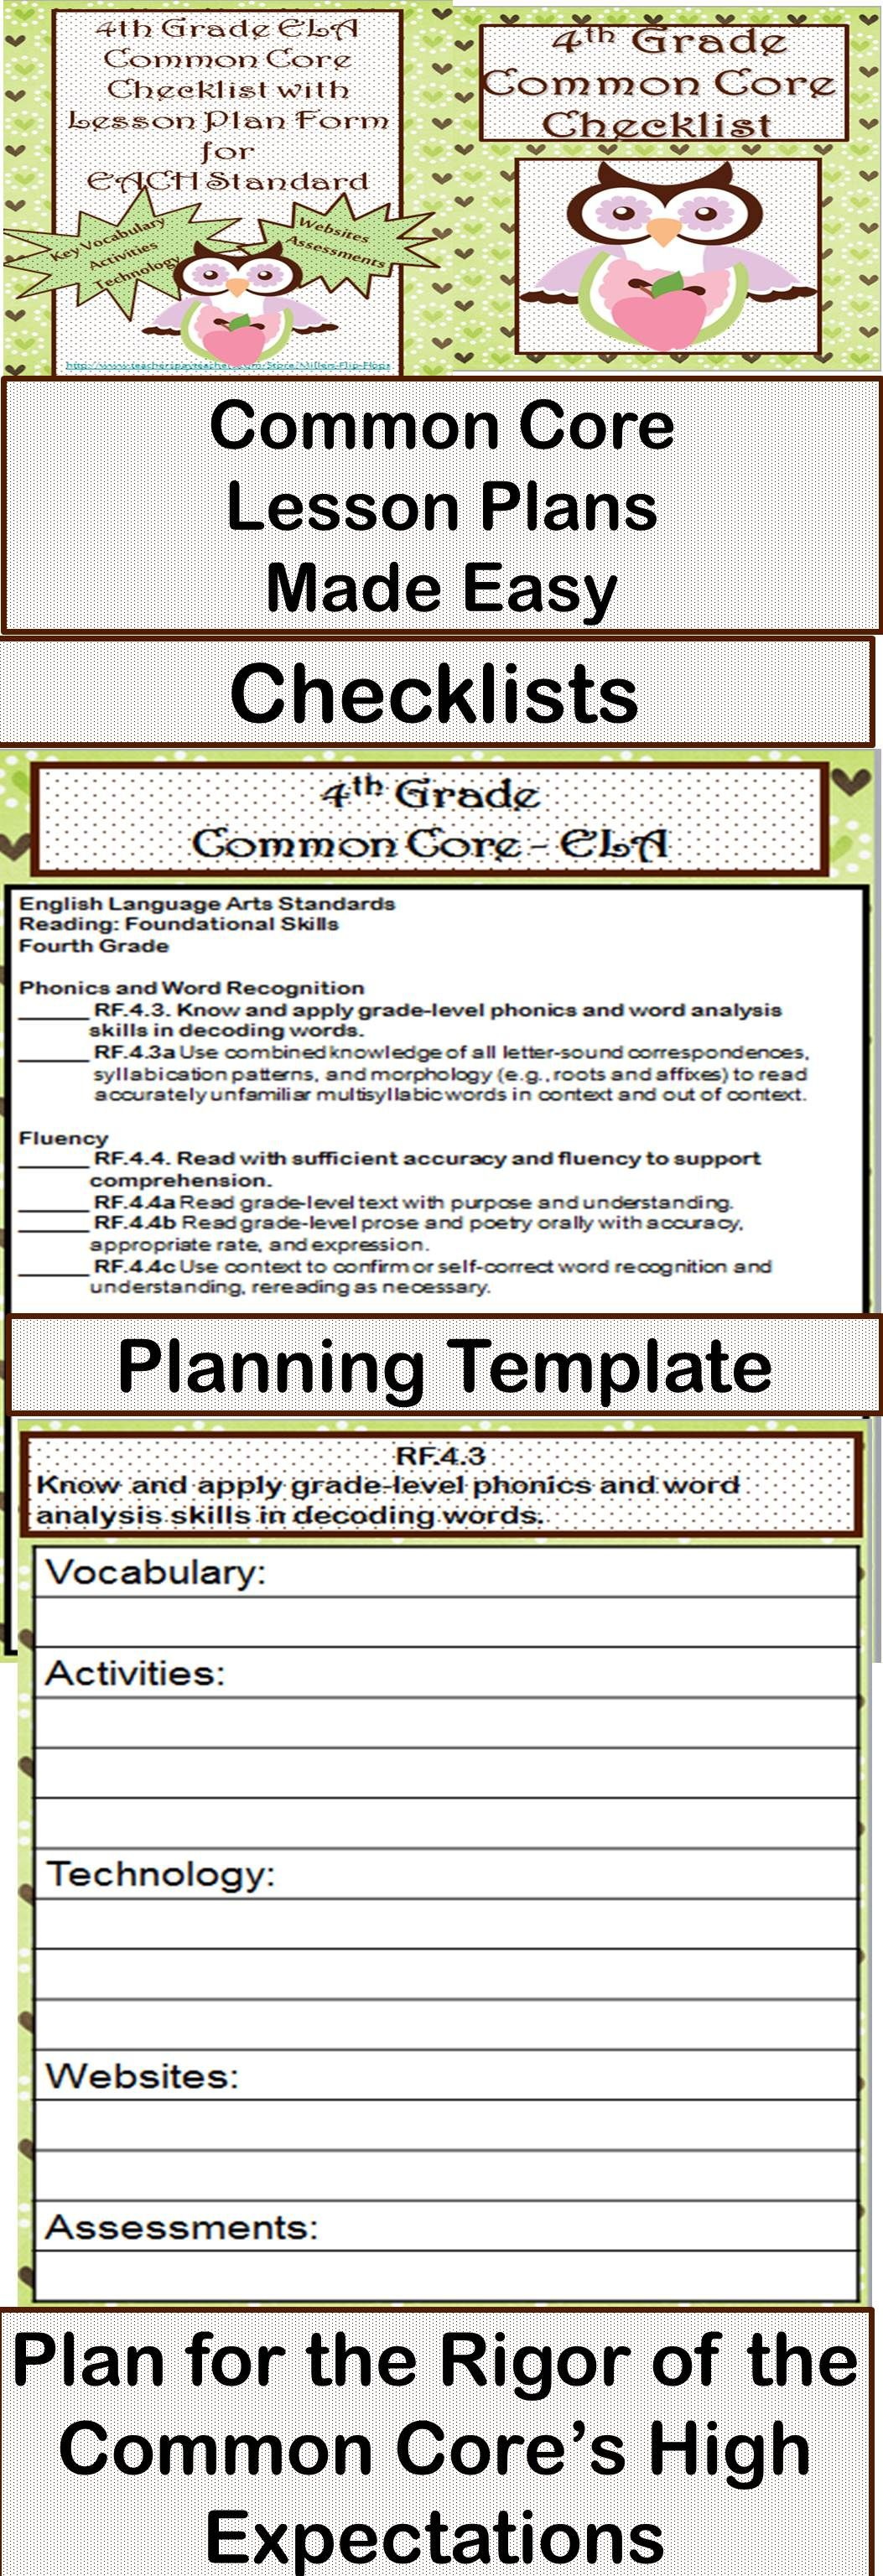 Th Grade ELA Common Core Checklist Lesson Planning Form - Lesson plan template using common core standards